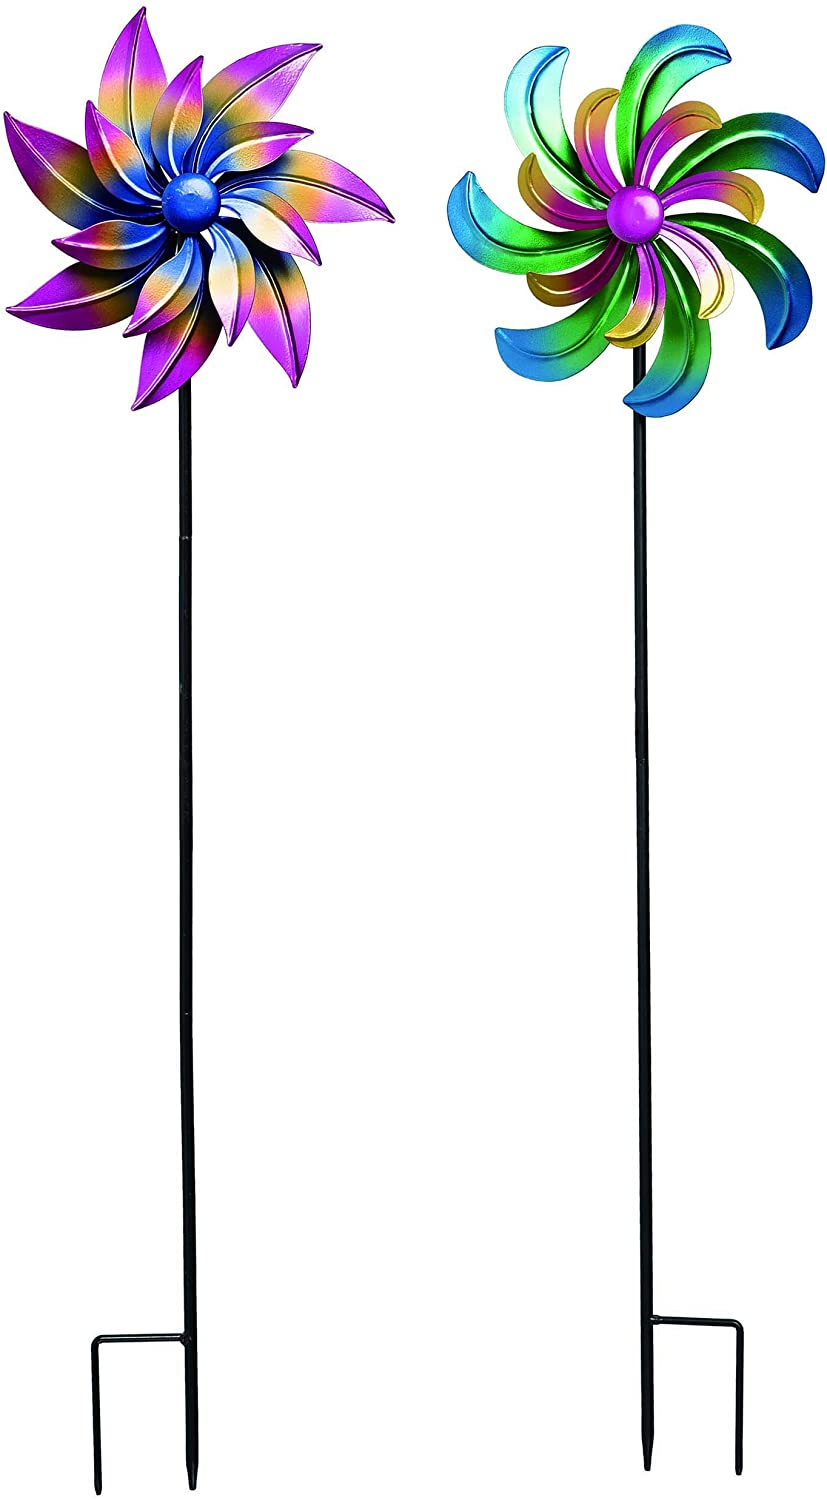 TII Set of 2 Aurora Borealis Metal Wind Spinners, 32 Inches High x 9 Inches Wide, Outdoor Yard Art Sculptures